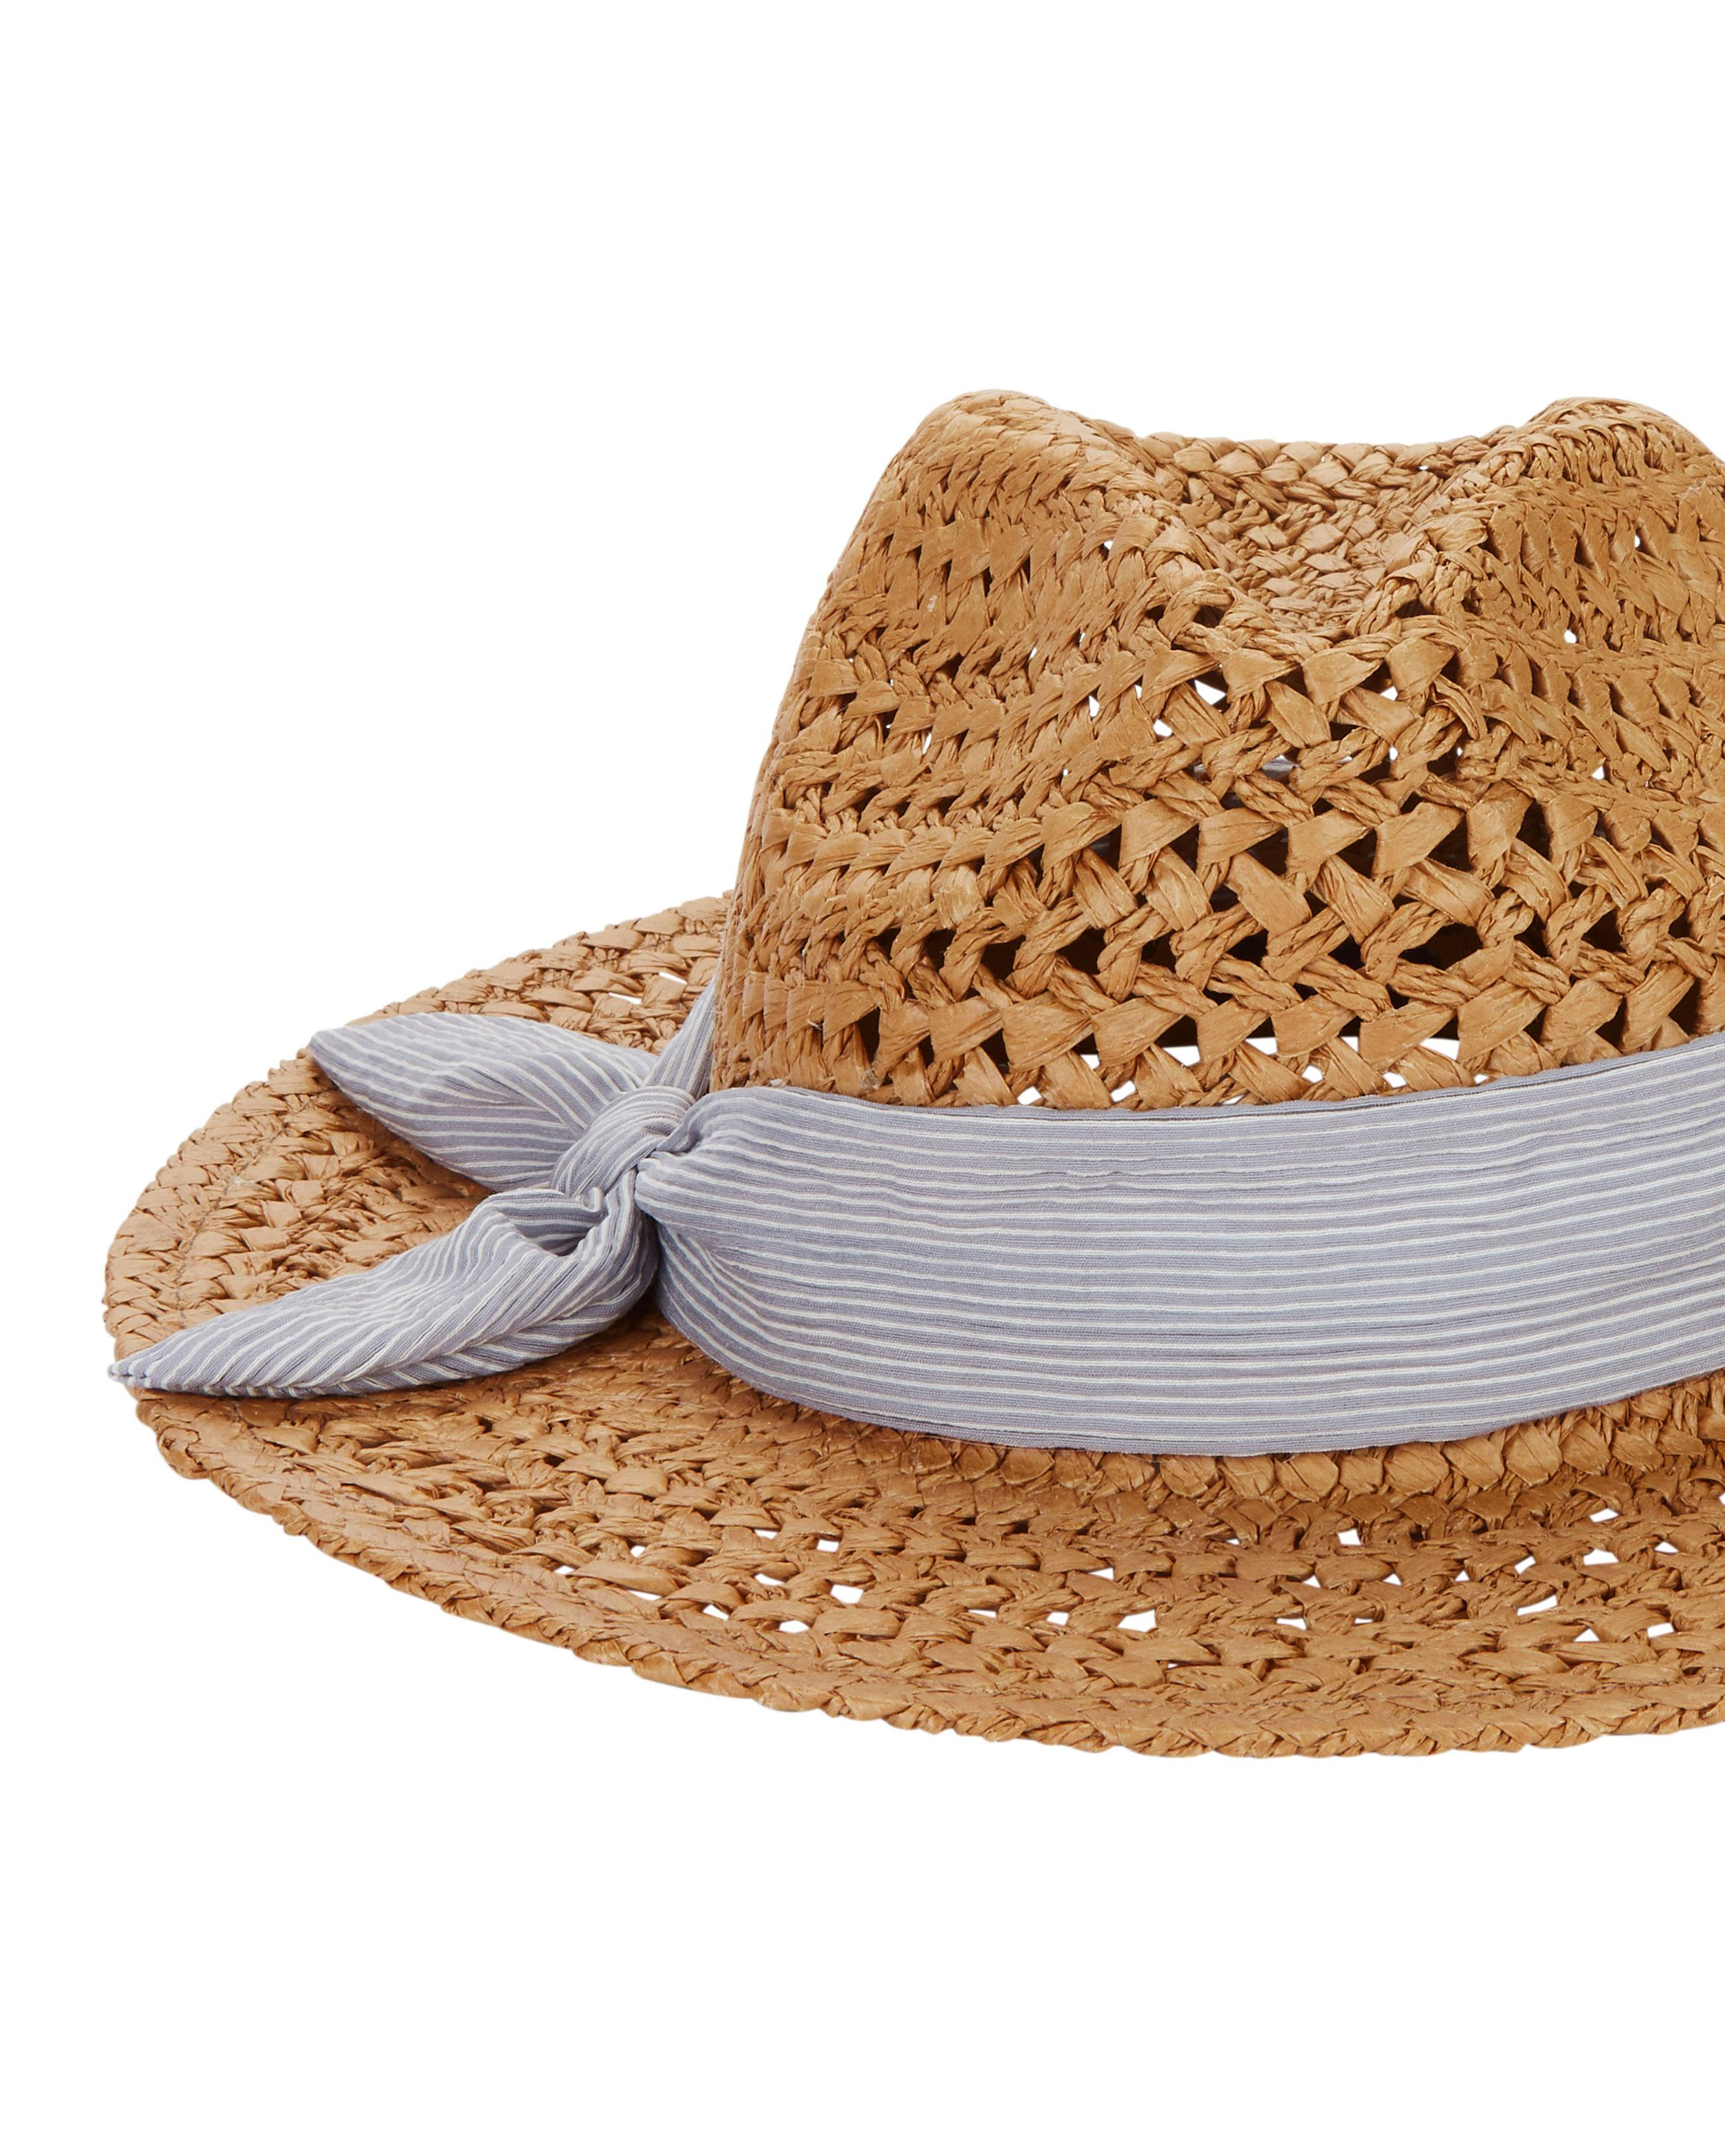 346c9a9cfa4 Lyst - Hat Attack Cane Weave Rancher Hat in Brown